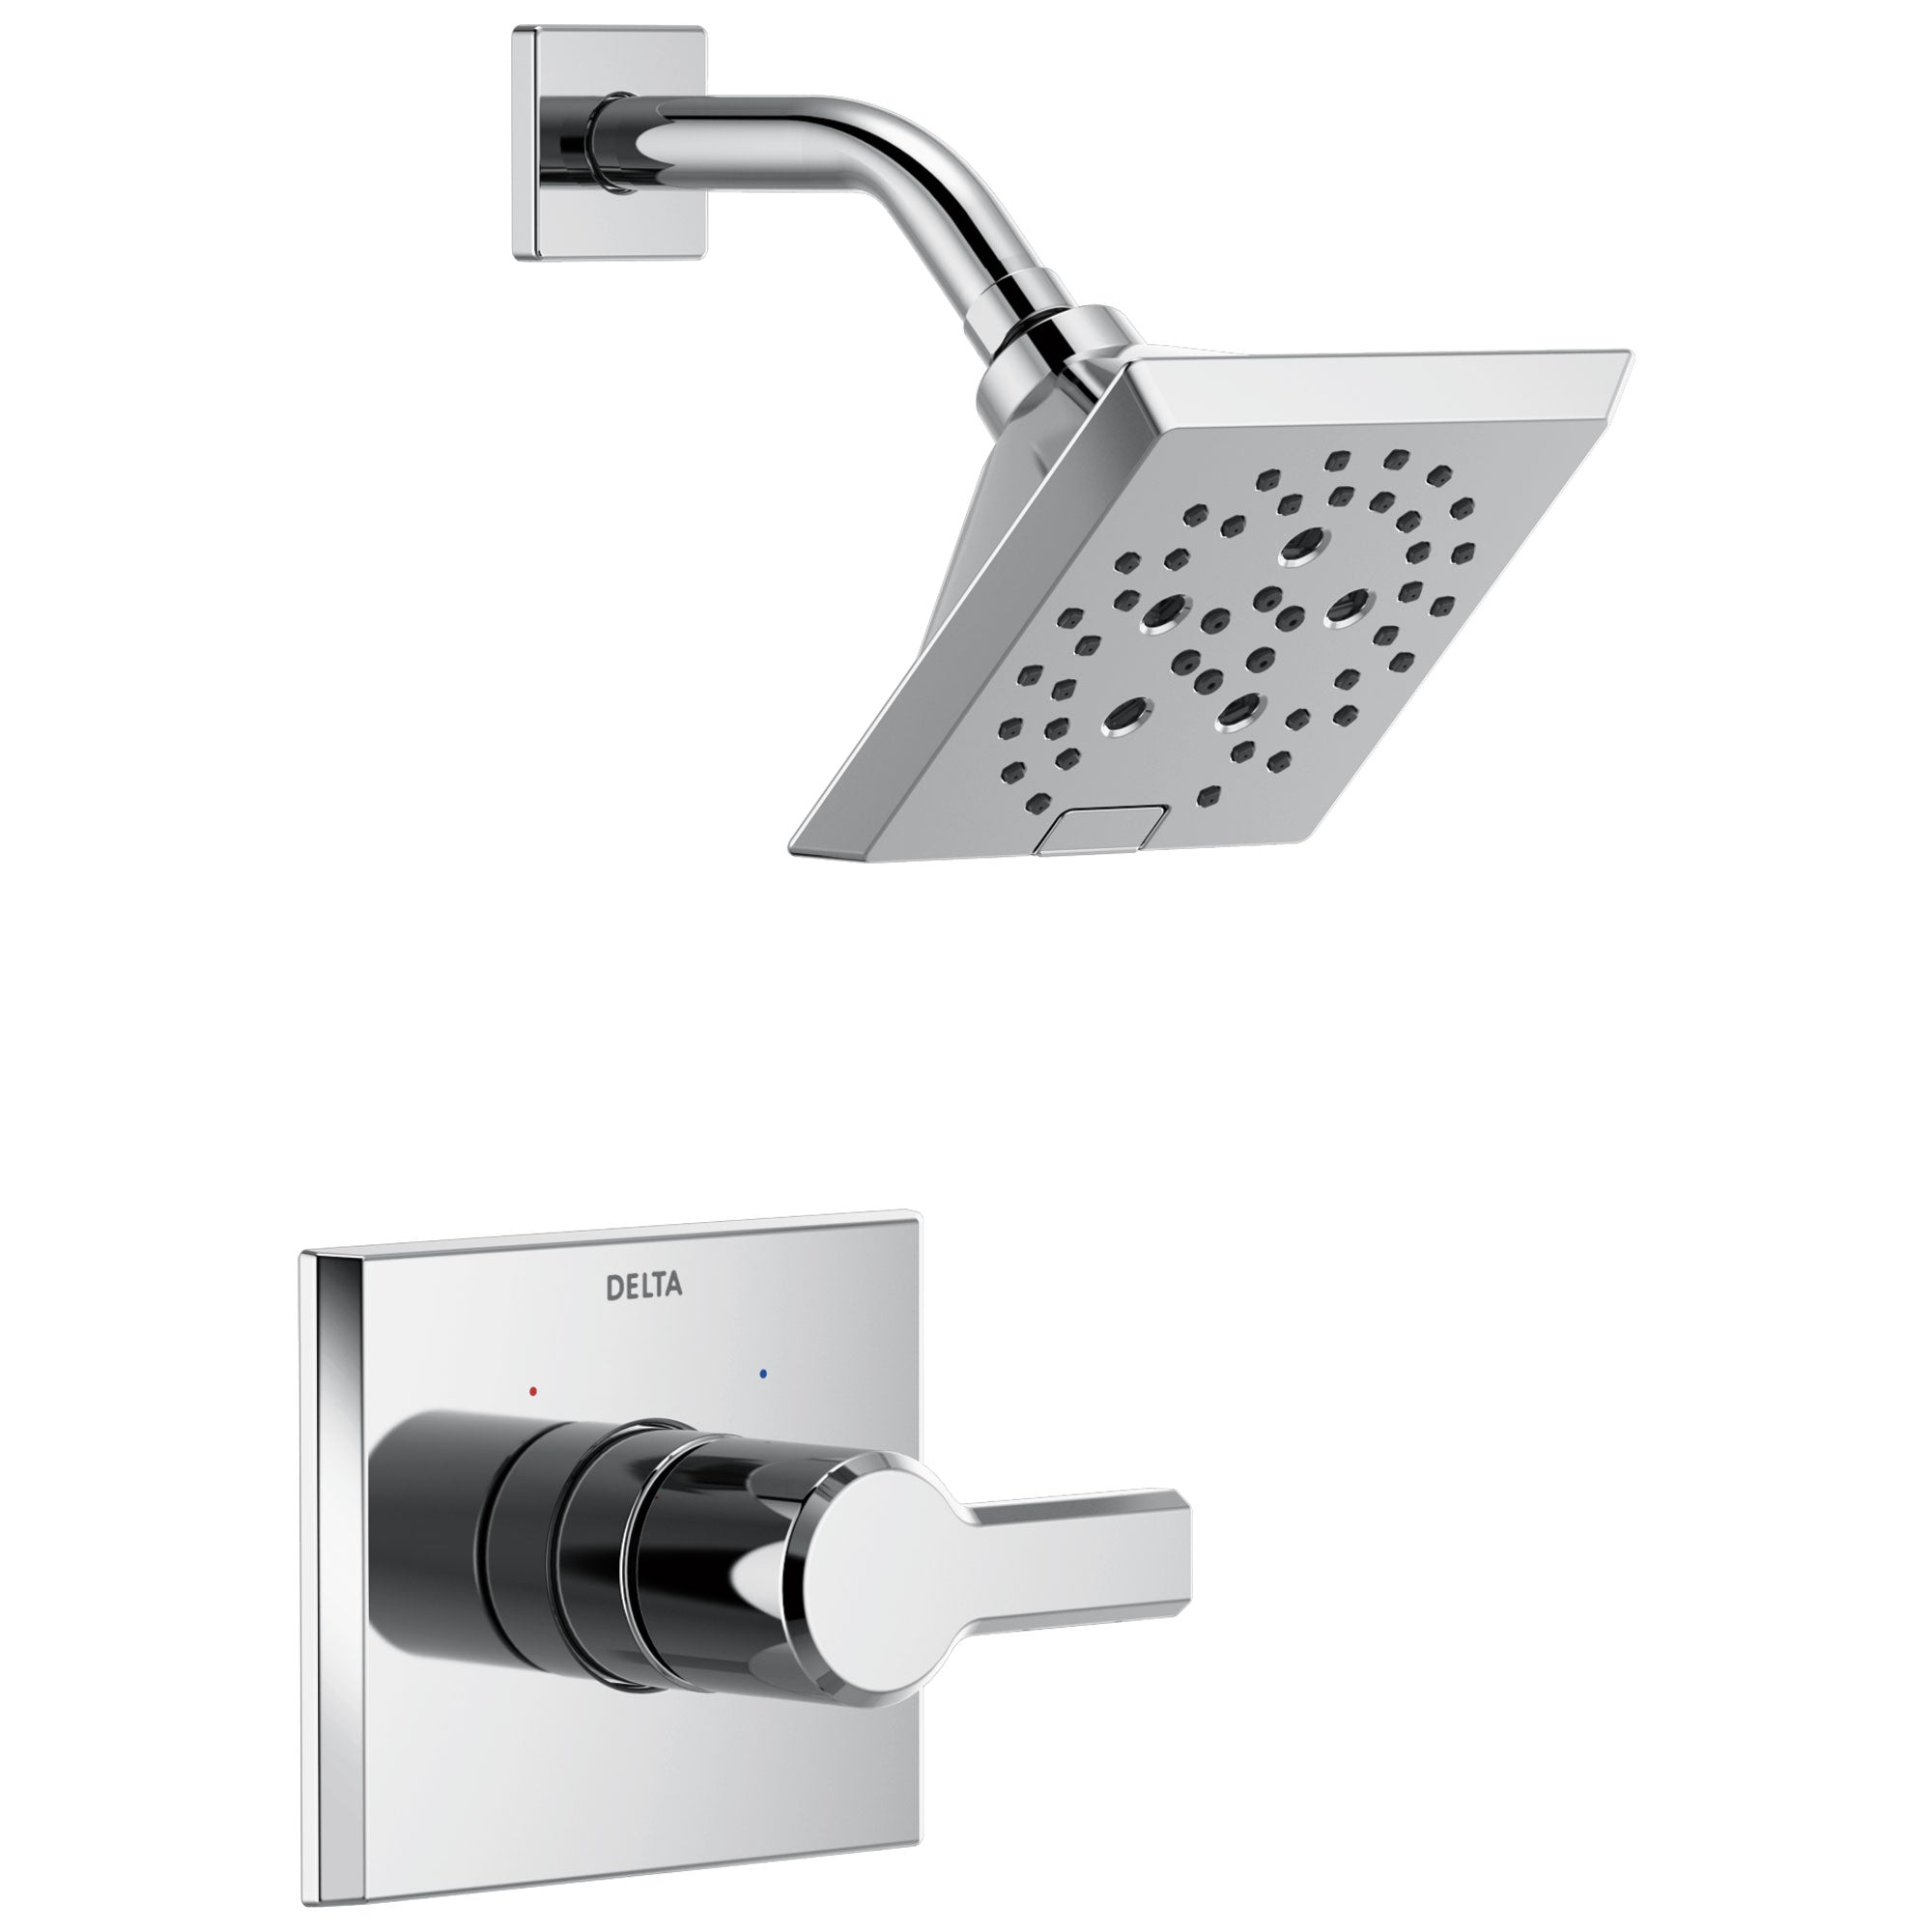 Delta Pivotal Chrome Finish Monitor 14 Series Shower only Faucet Includes Single Lever Handle, Cartridge, and Valve without Stops D3481V